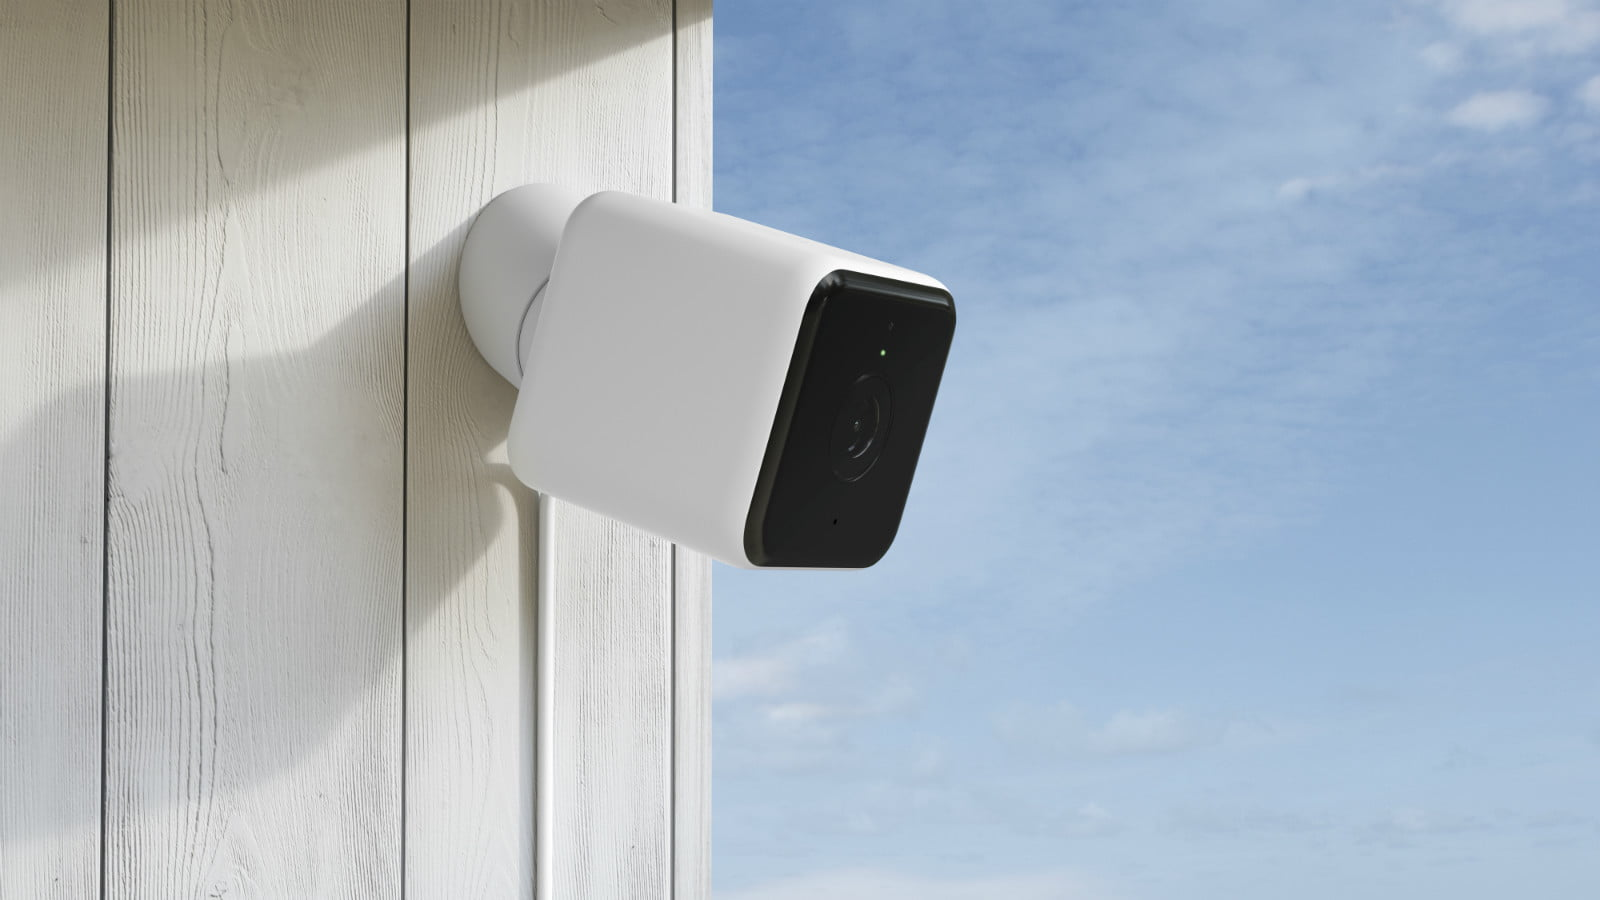 hive view outdoor smart security camera render  right angle insitu on white wood panelling copy